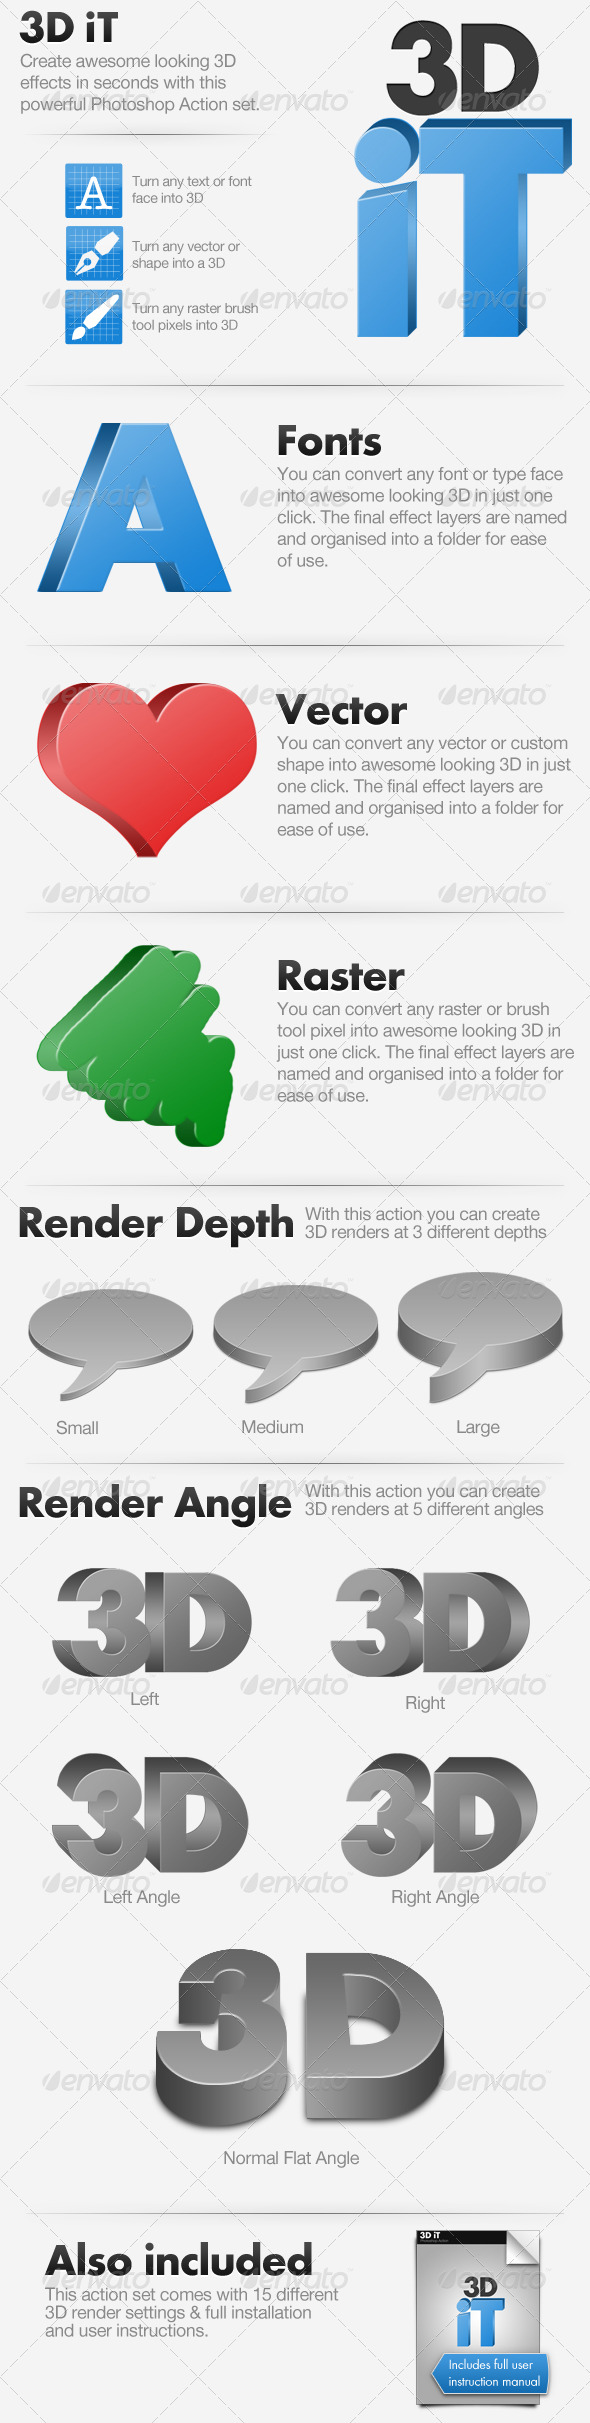 3D iT - 15 3D Rendering Actions - Photoshop Add-ons